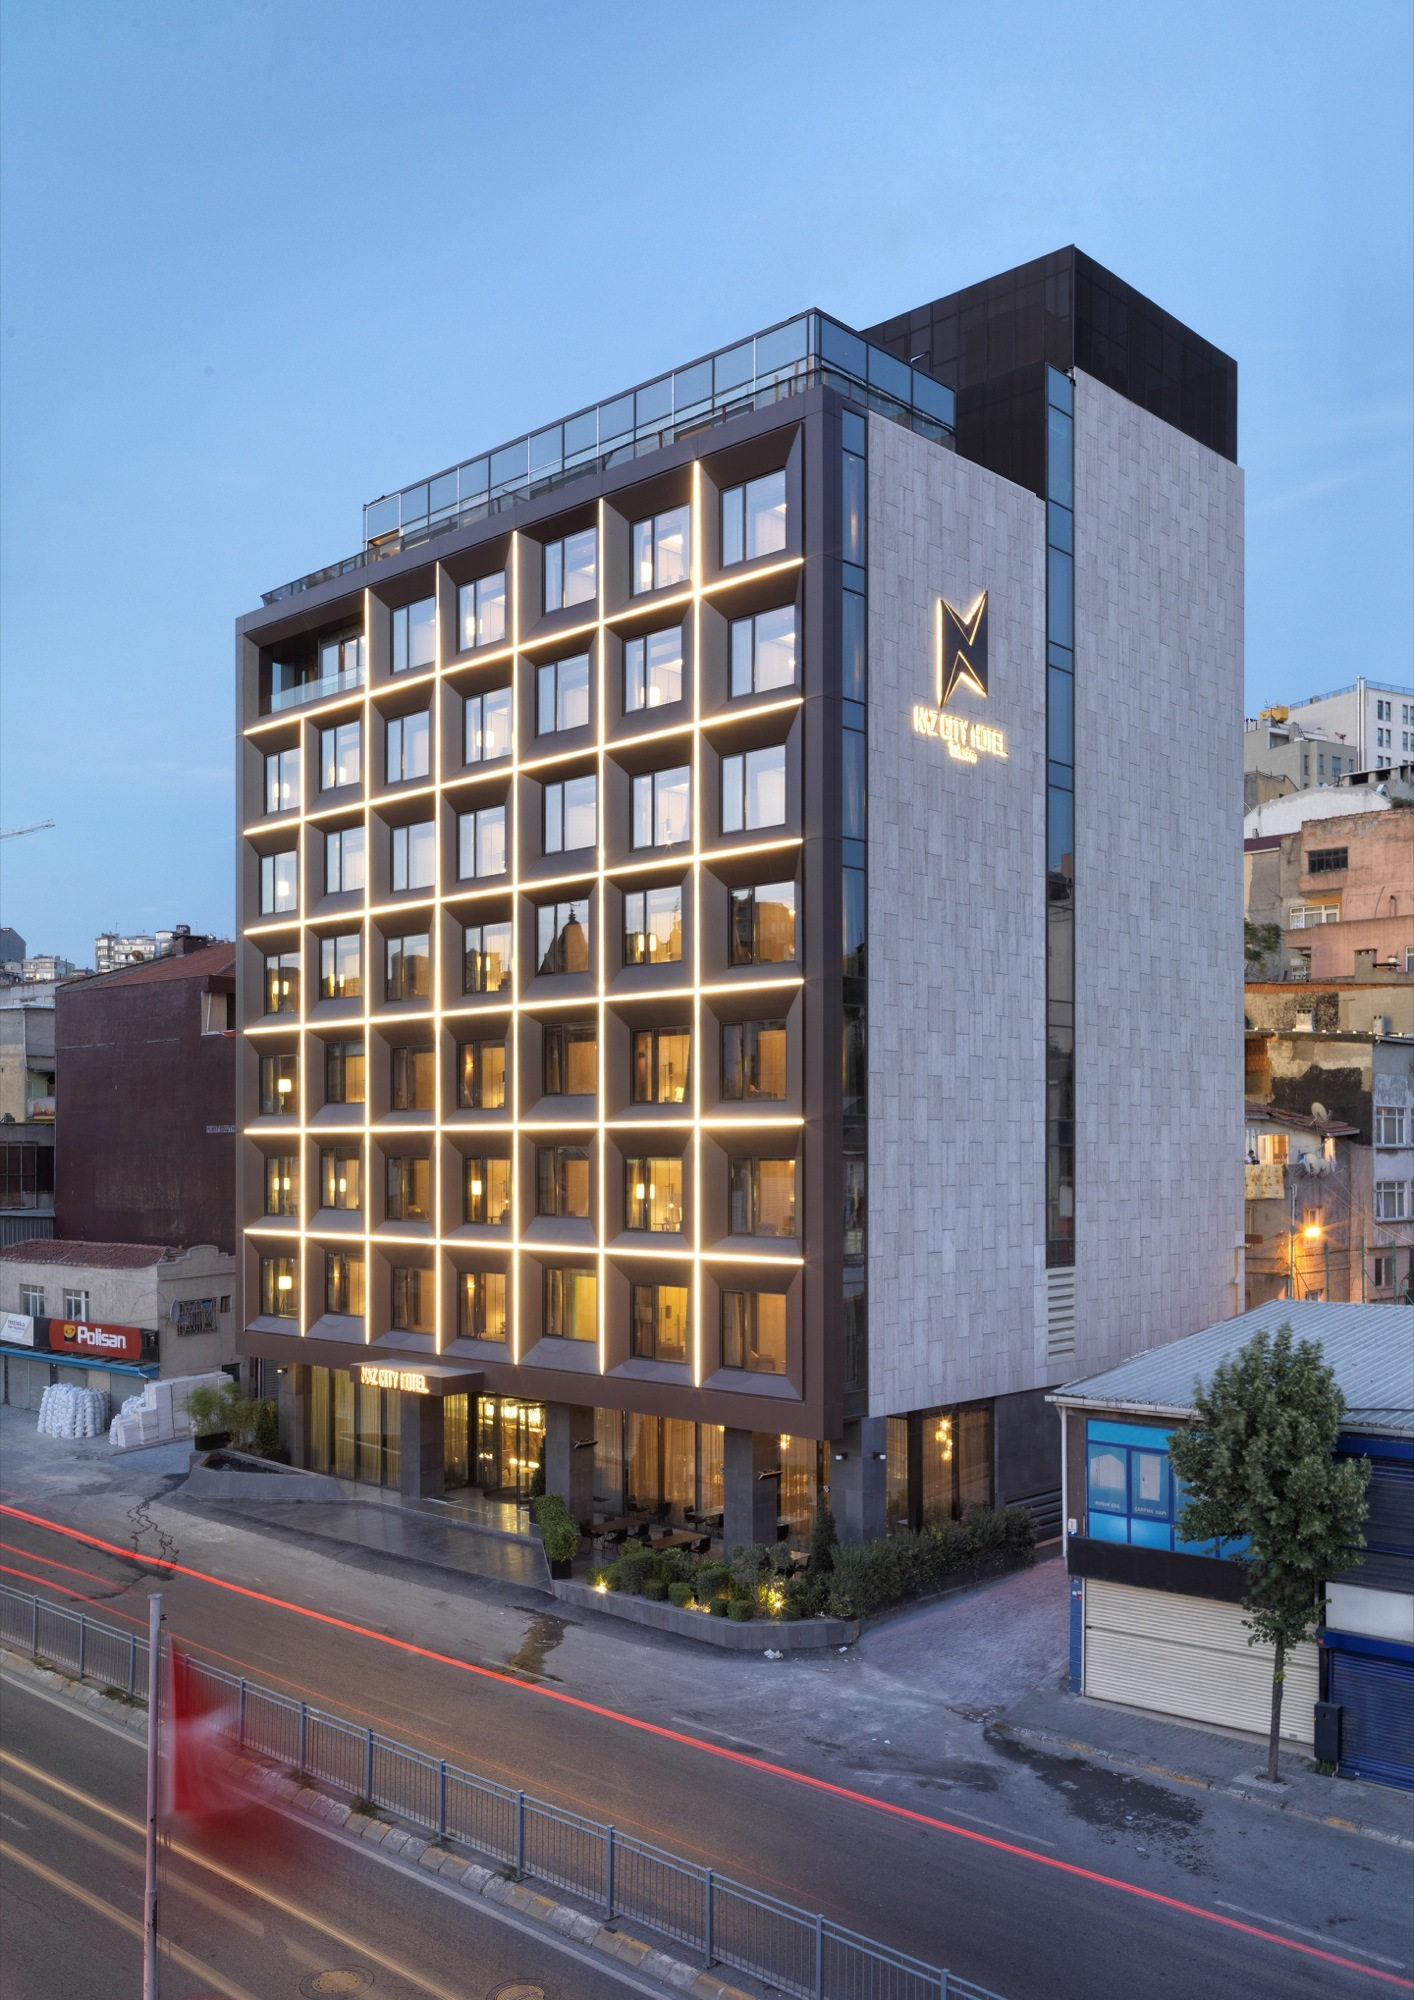 Naz city hotel taksim metex design group archdaily for Design hotel stubaital